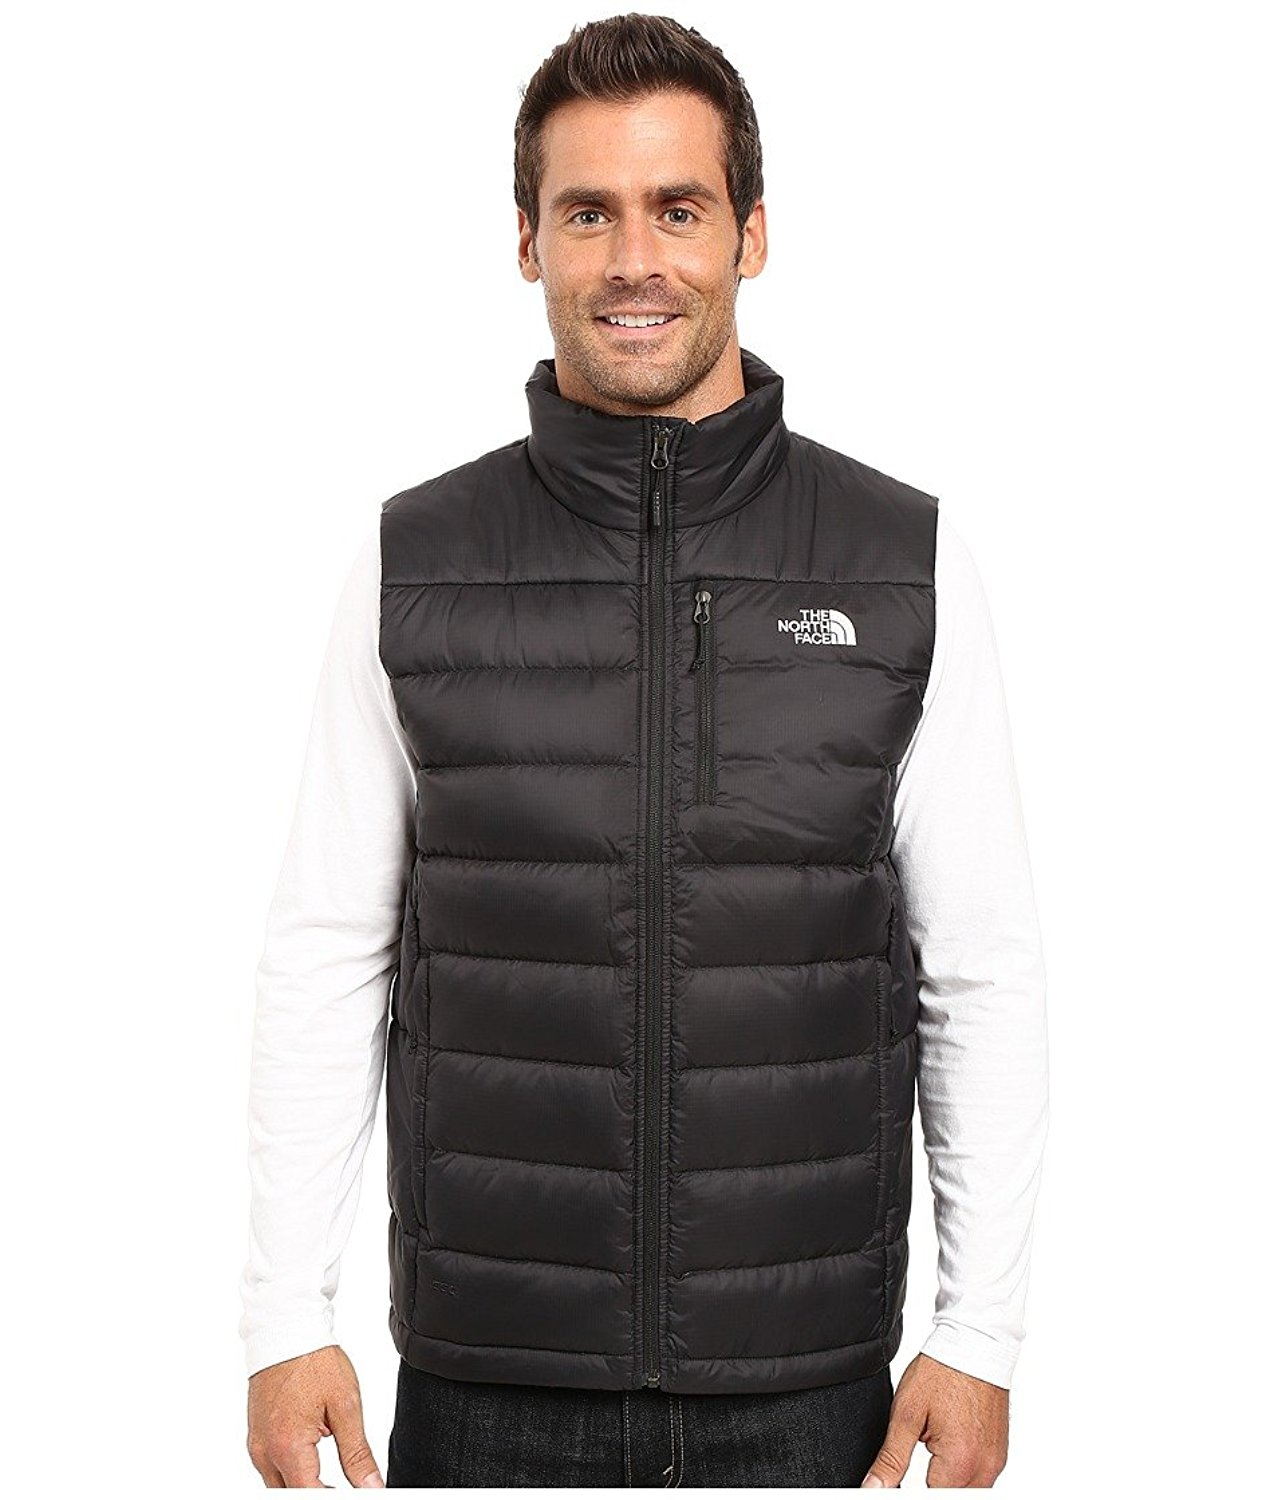 18efae32a Cheap North Face Aconcagua Vest, find North Face Aconcagua Vest ...